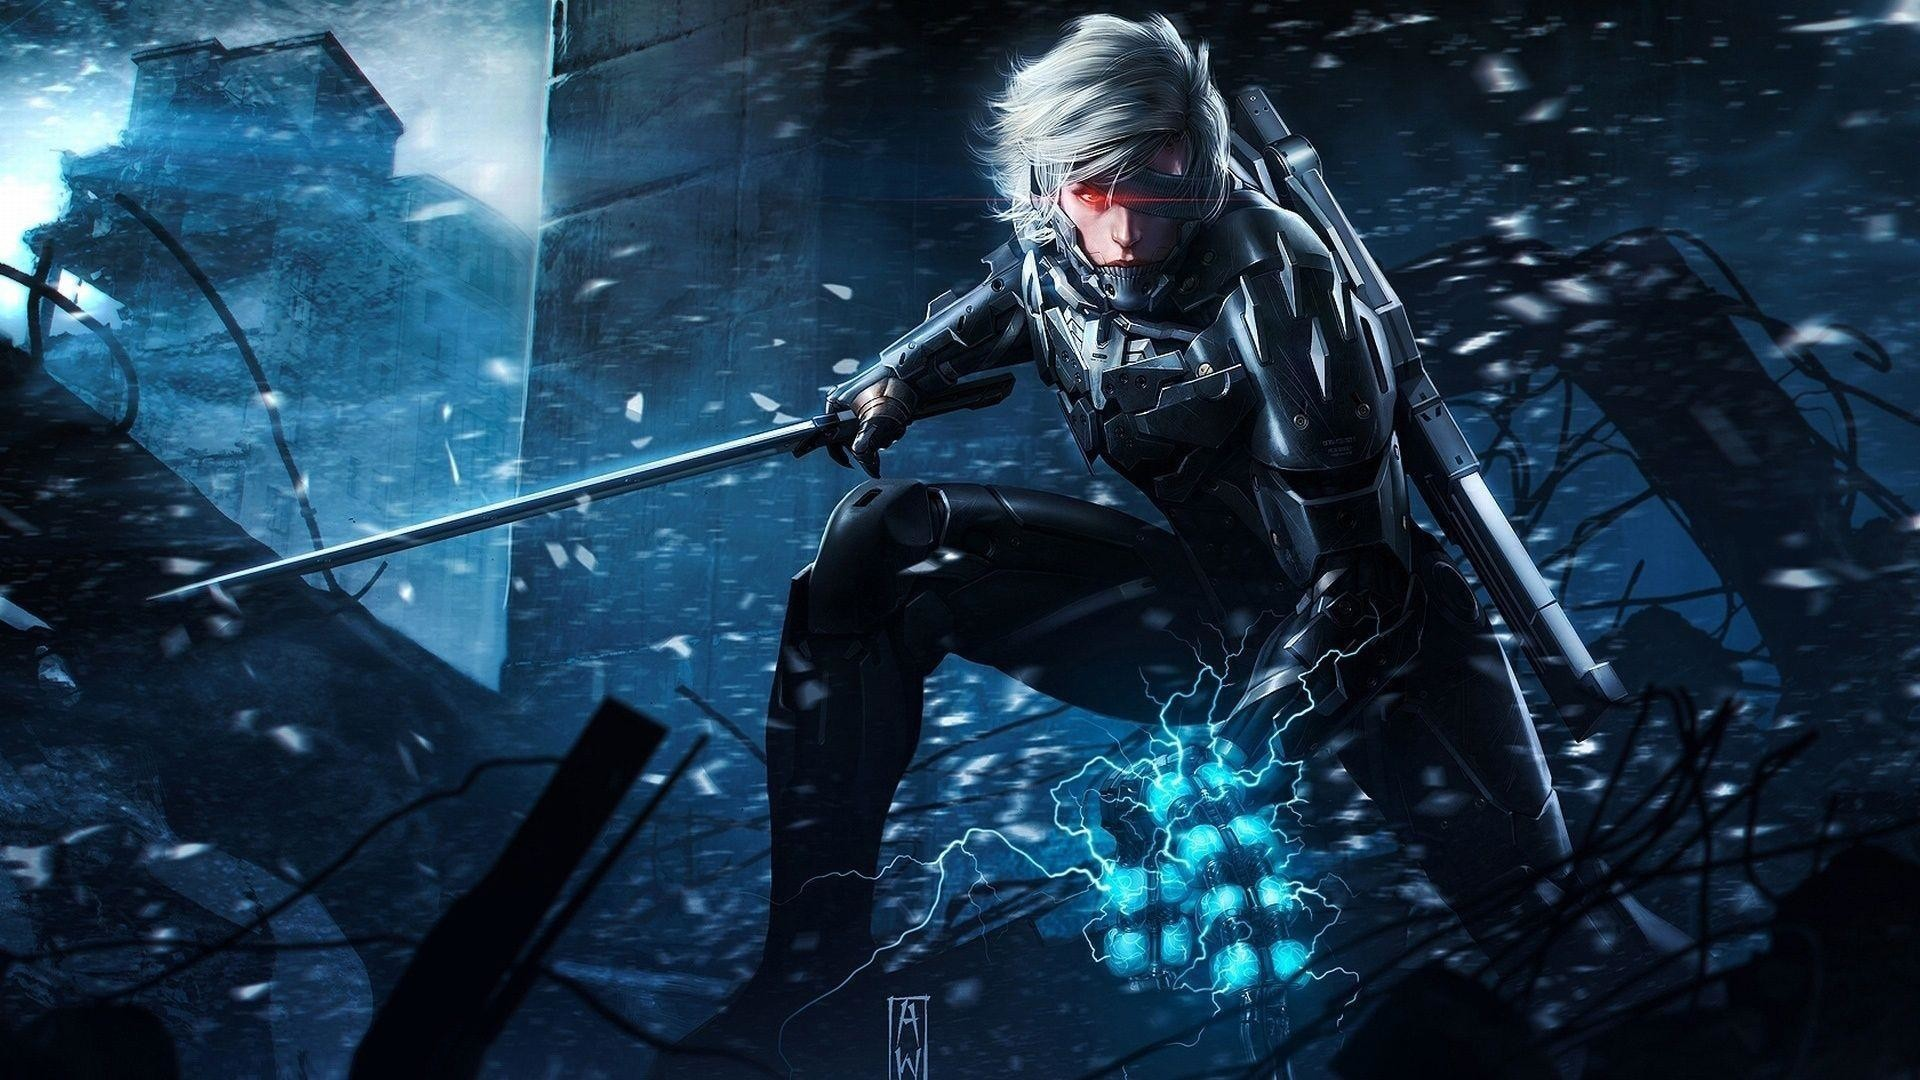 Cool Game Wallpapers 77 Pictures